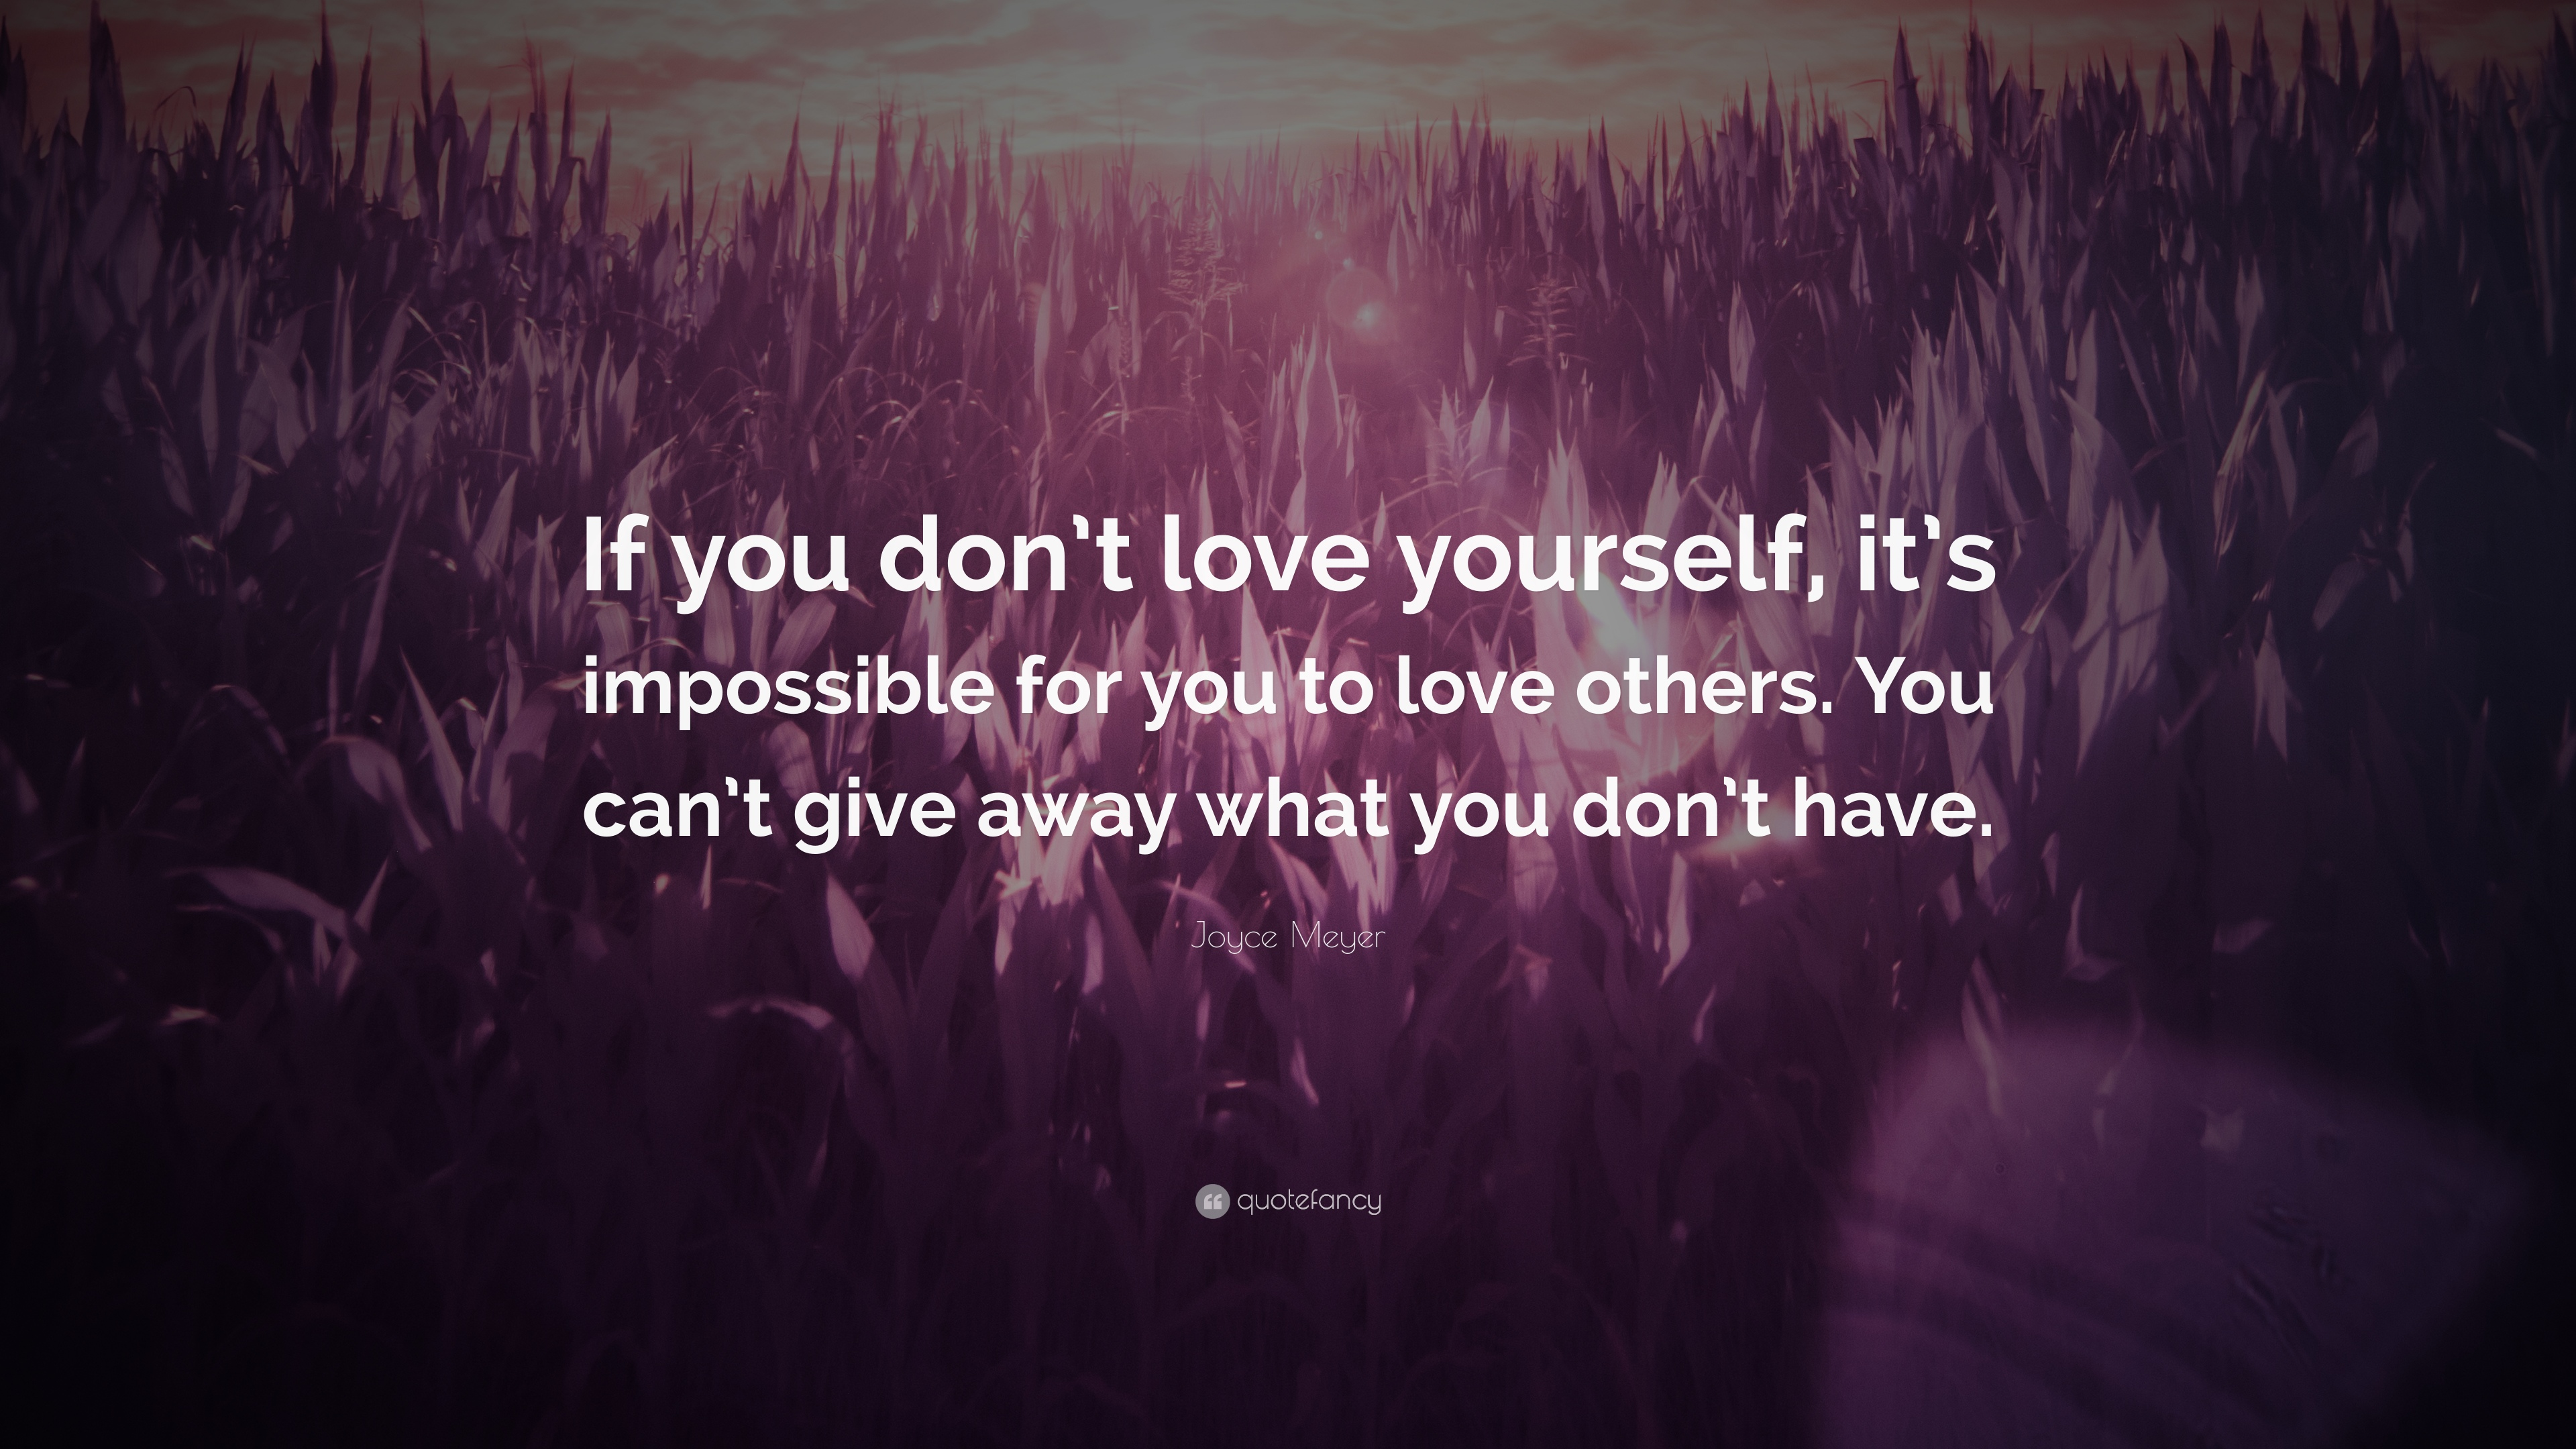 Nice Joyce Meyer Quote: U201cIf You Donu0027t Love Yourself, Itu0027s Impossible For